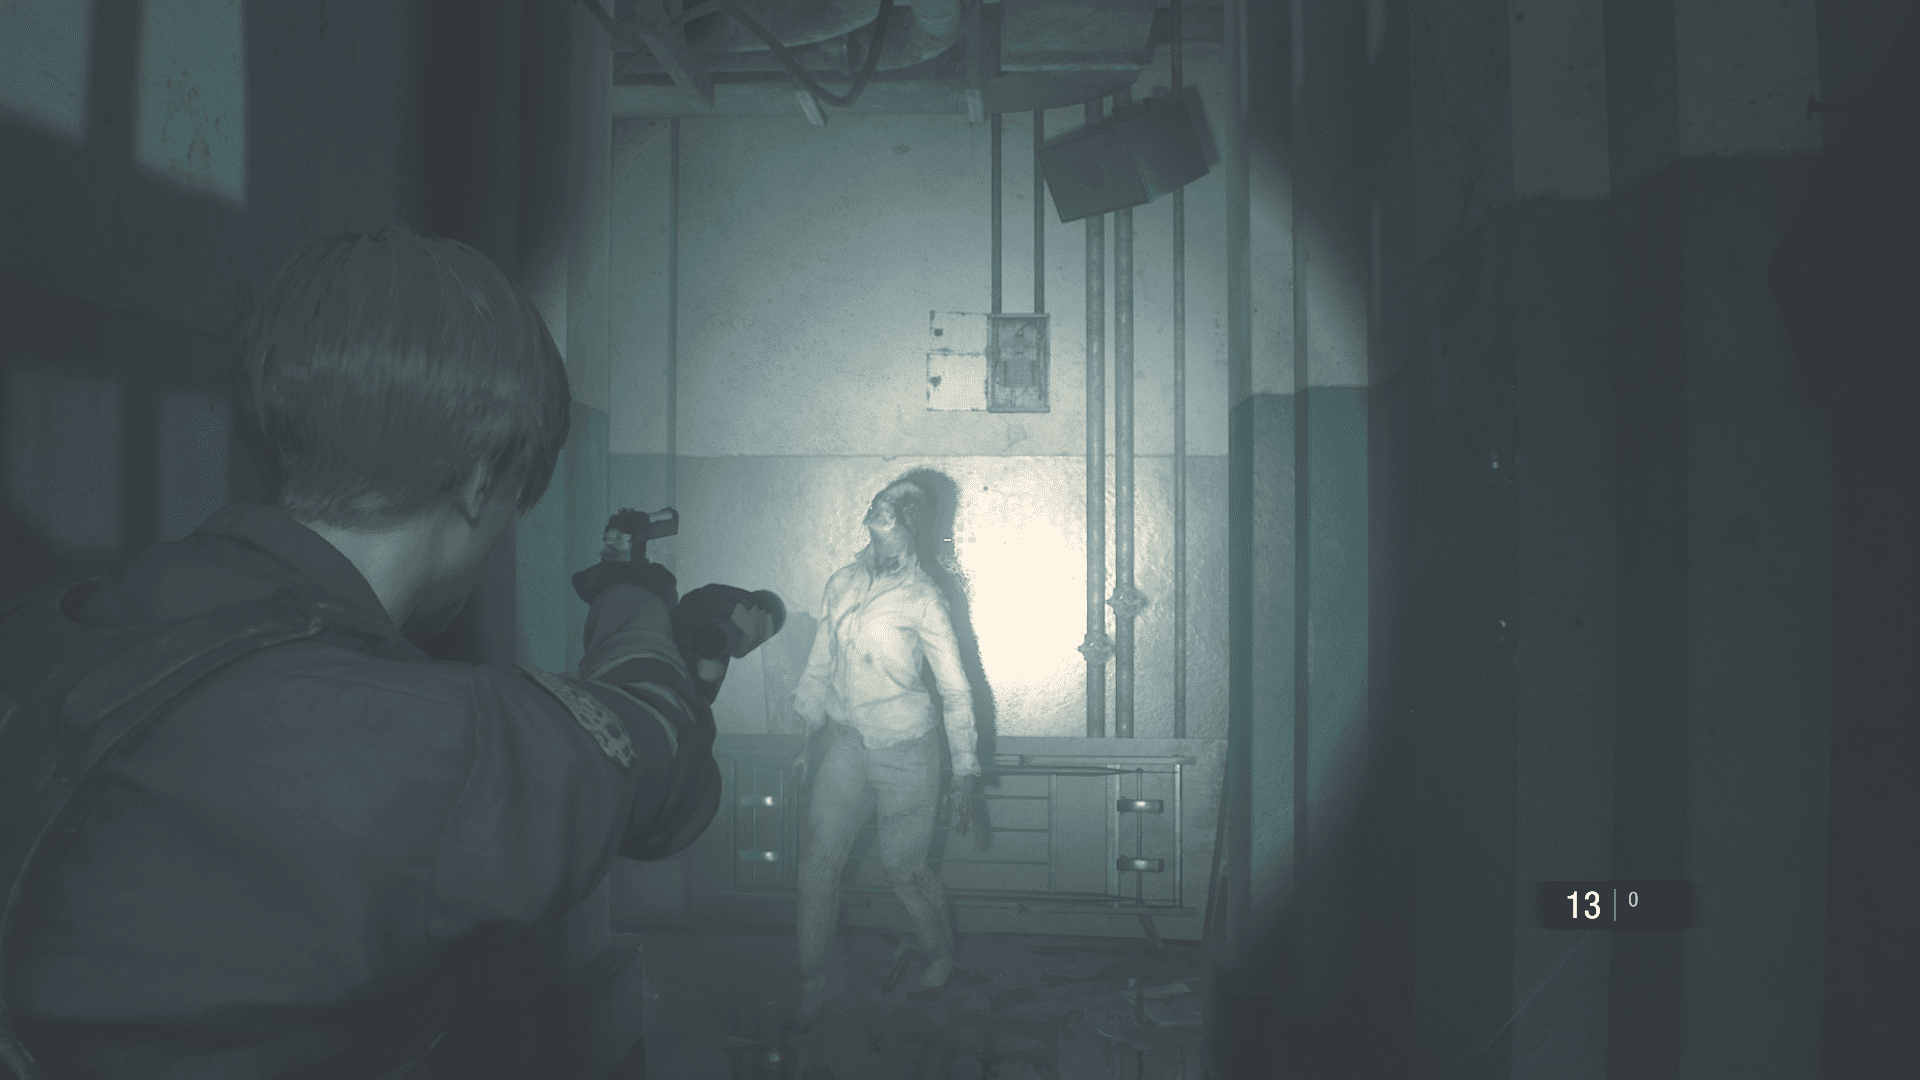 RESIDENT EVIL 2 20190122180931 - Resident Evil 2 Review - Take Me Down To Raccoon City